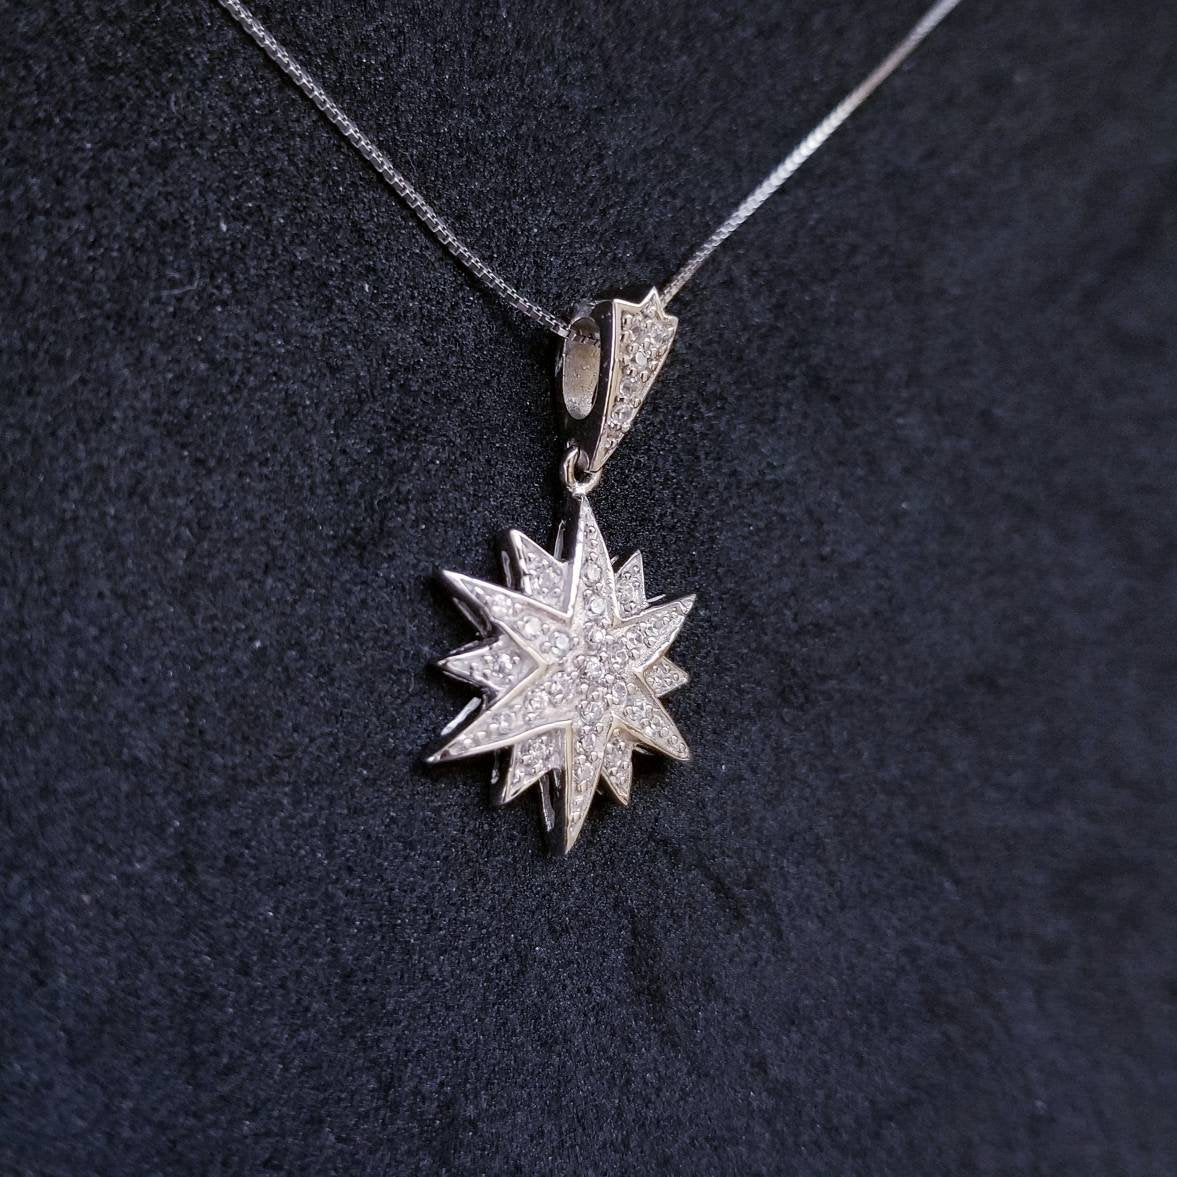 New 14k White Gold On 925 Sterling Silver Shiny Starburst CZ Stones Pendant Free Chain